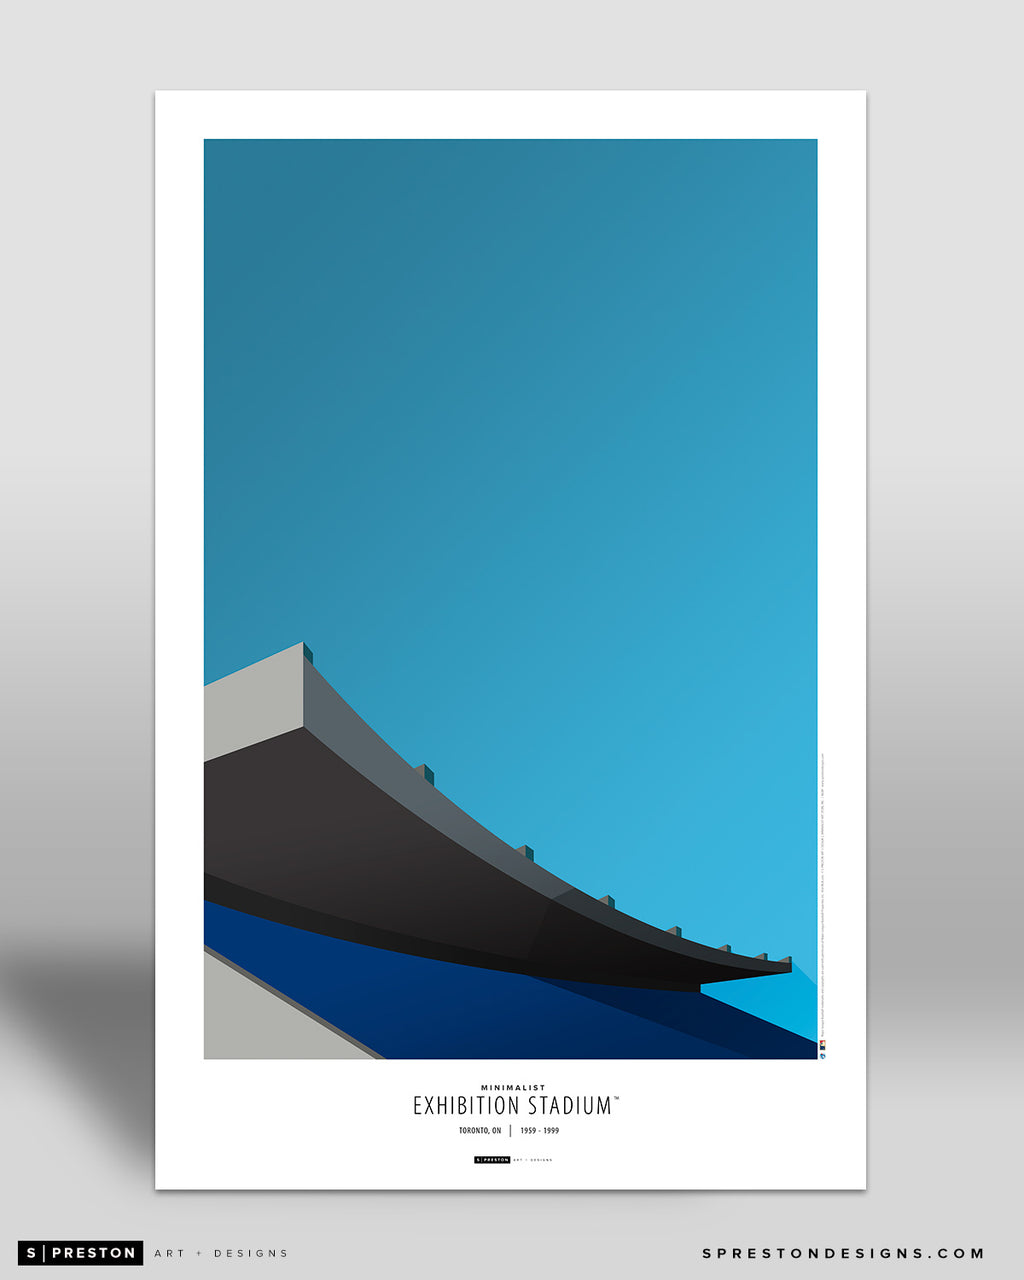 Minimalist Exhibition Stadium Poster Print Toronto Blue Jays - S Preston